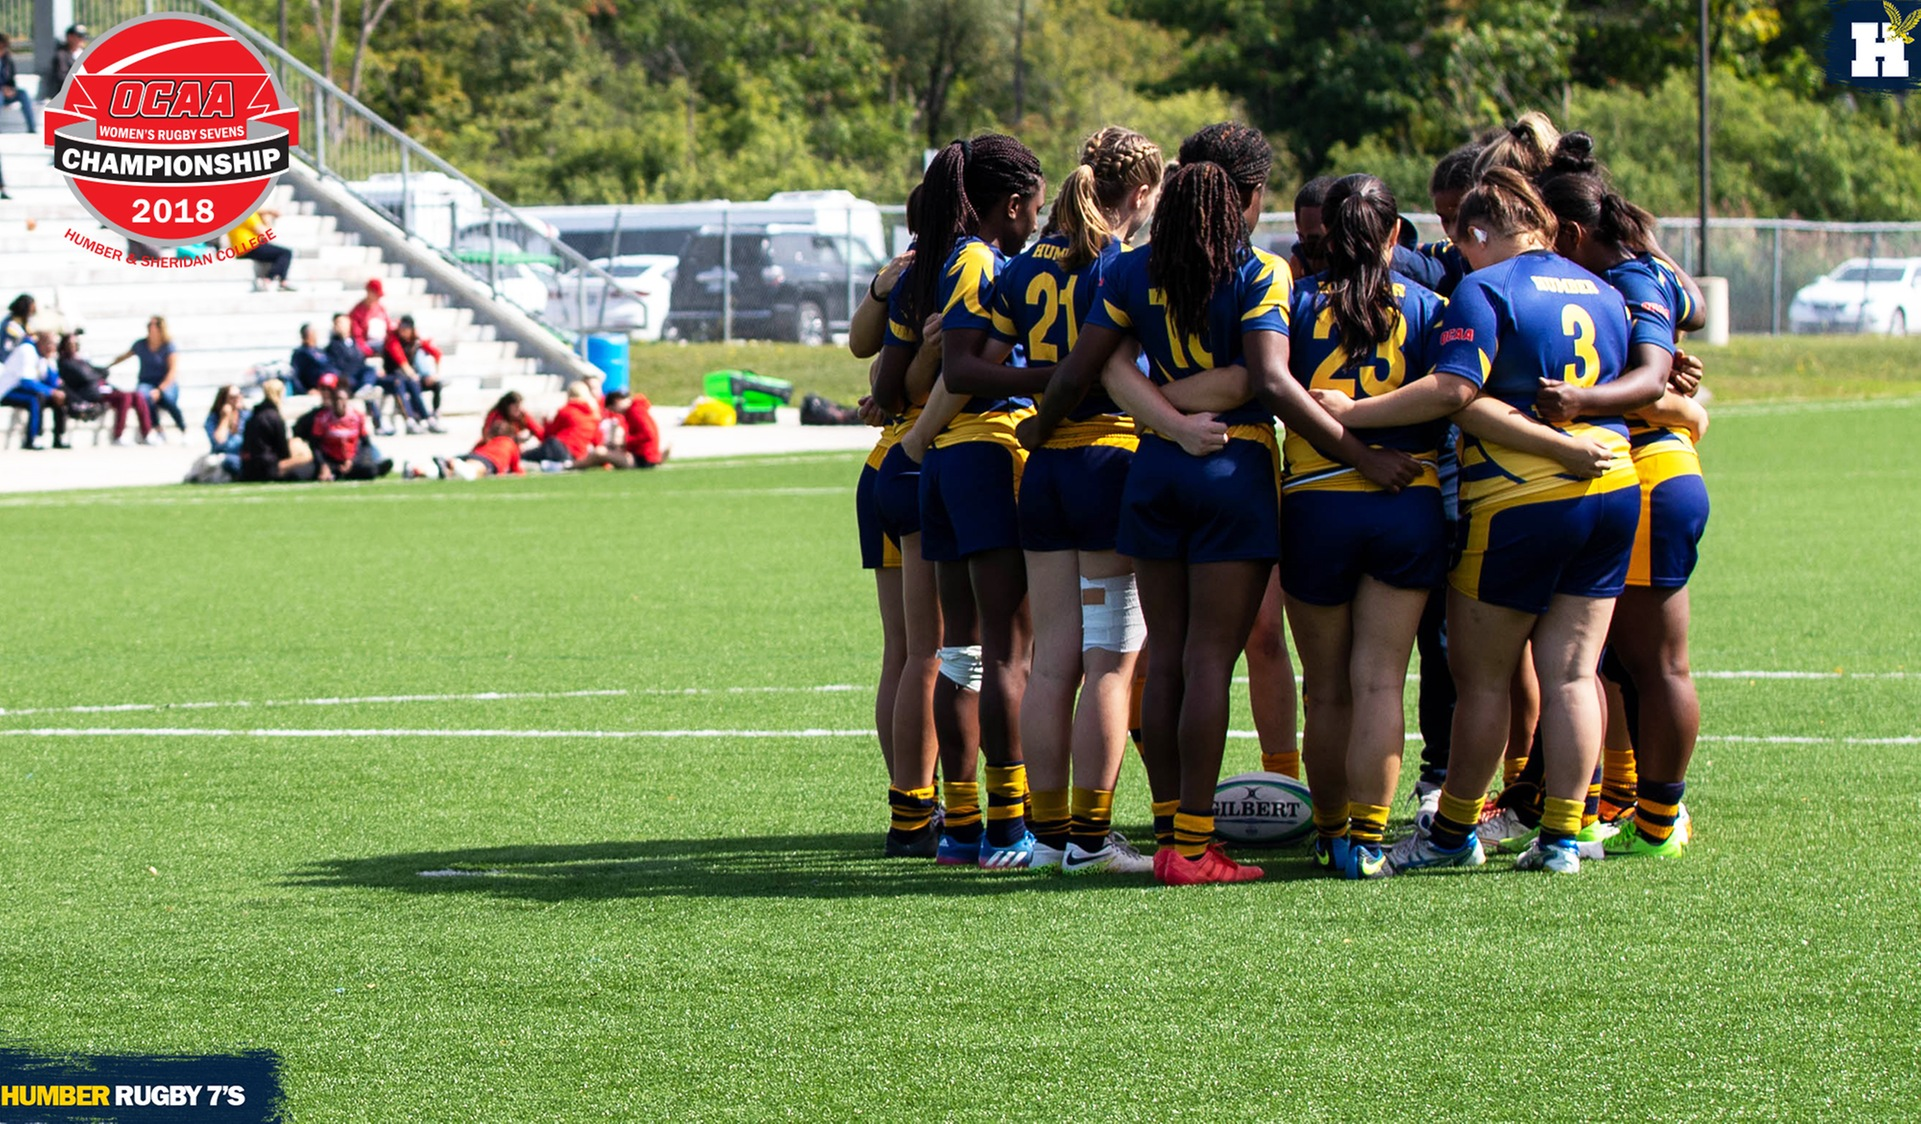 RUGBY 7'S SET FOR OCAA TITLE RUN SATURDAY